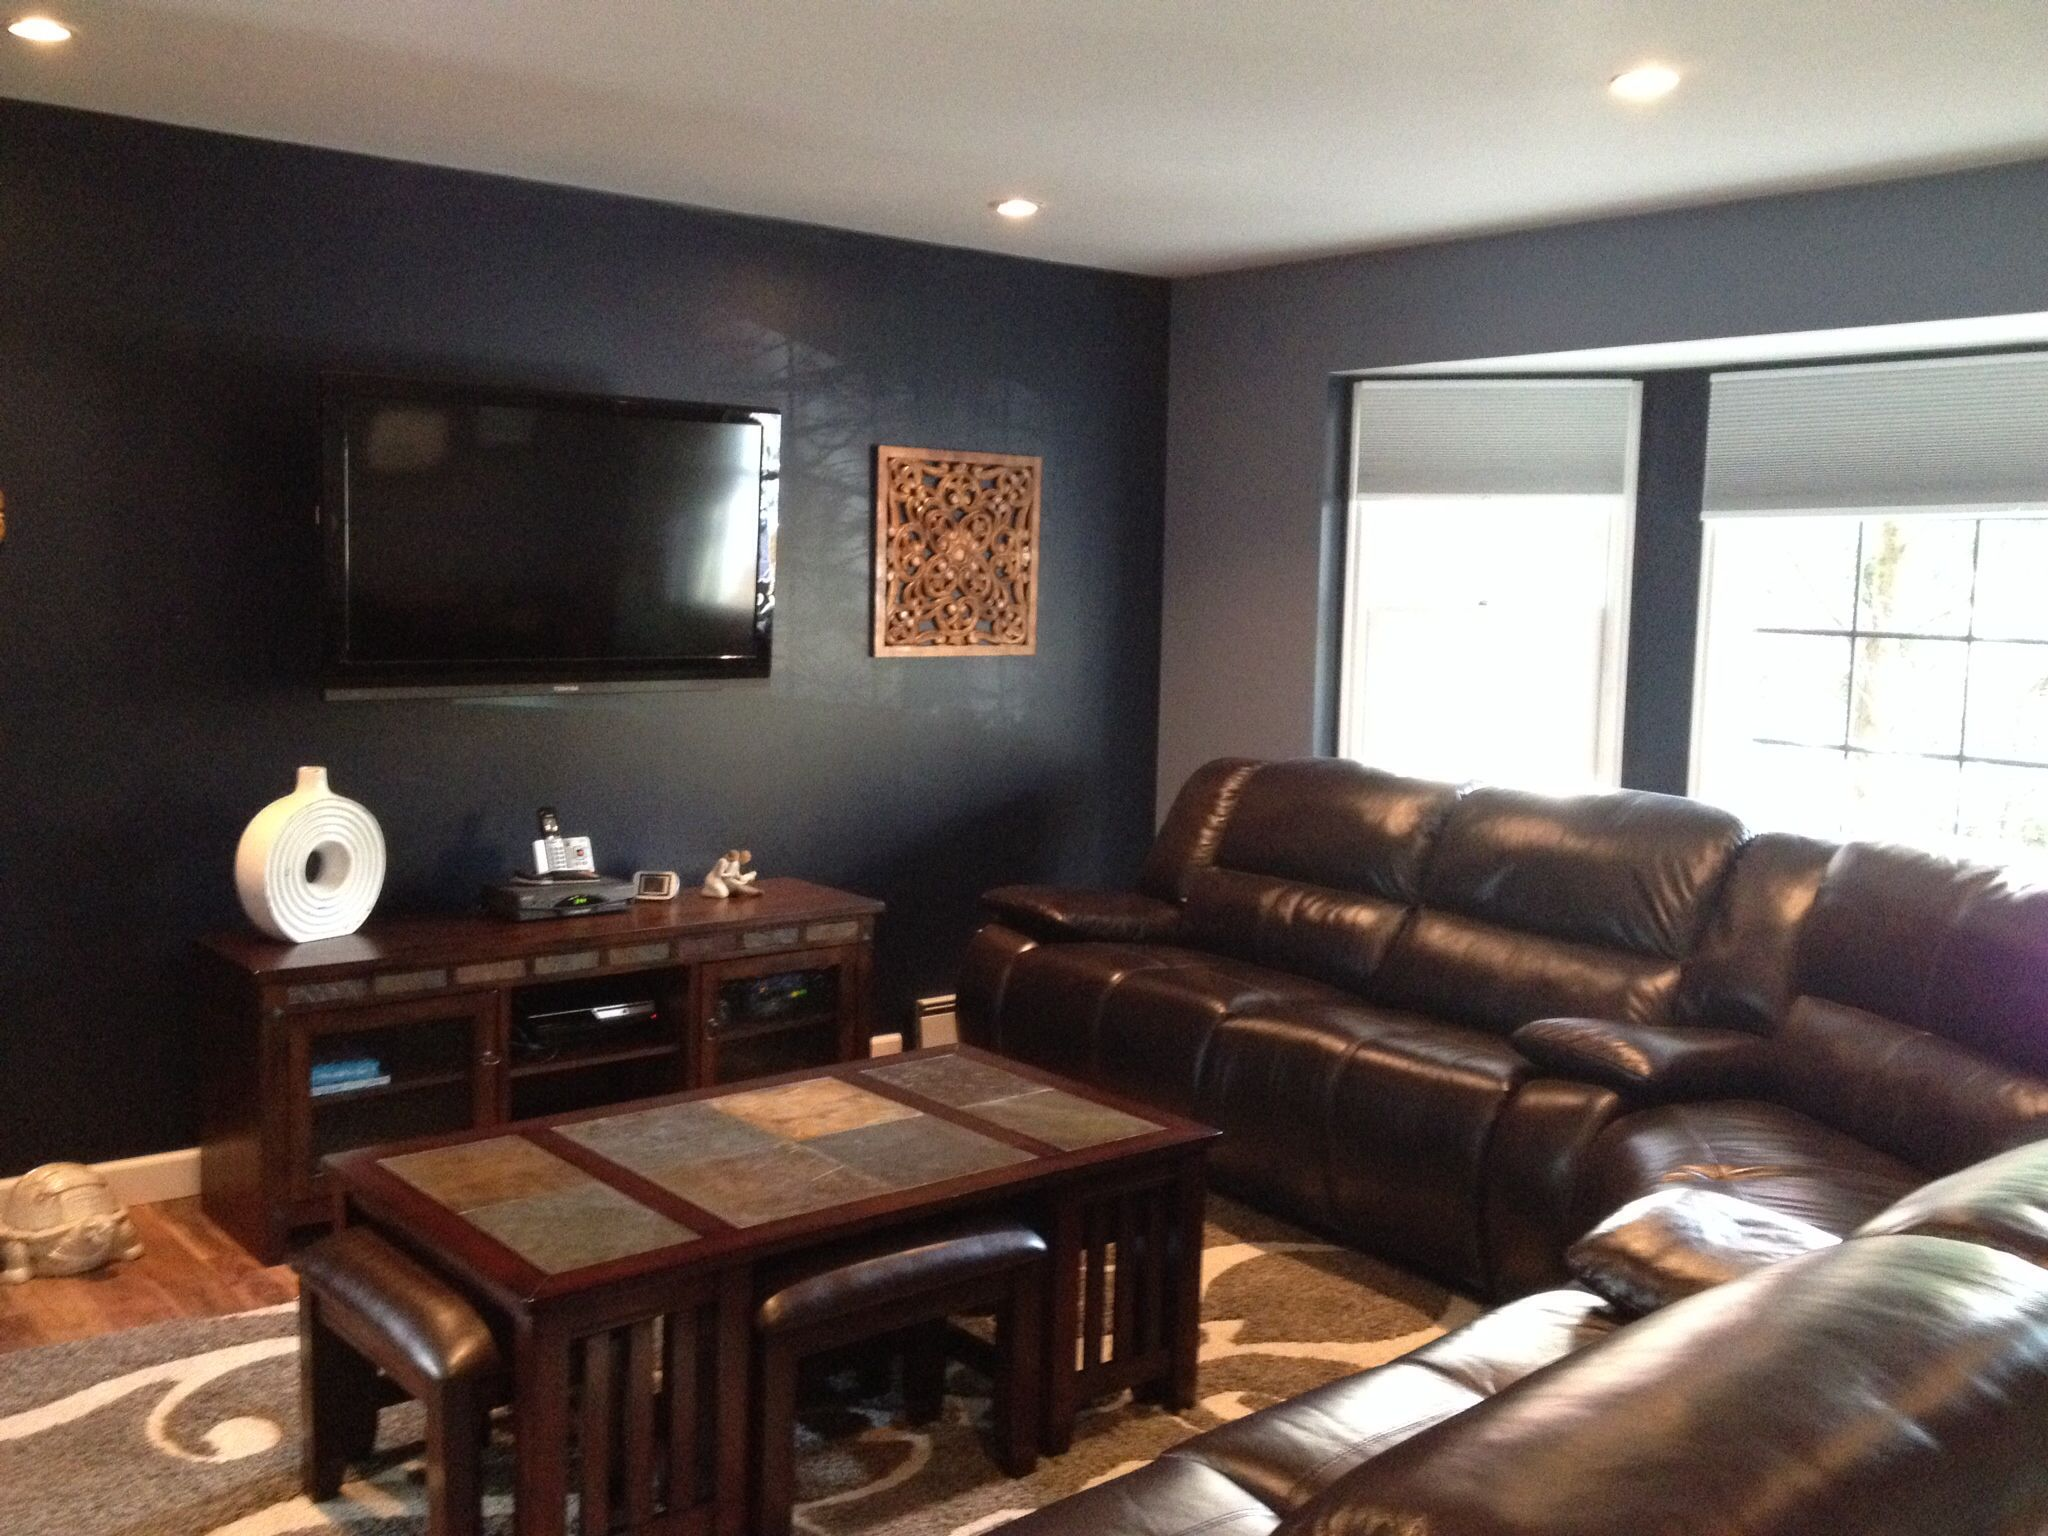 After Navy blue and brown living room entertainment room